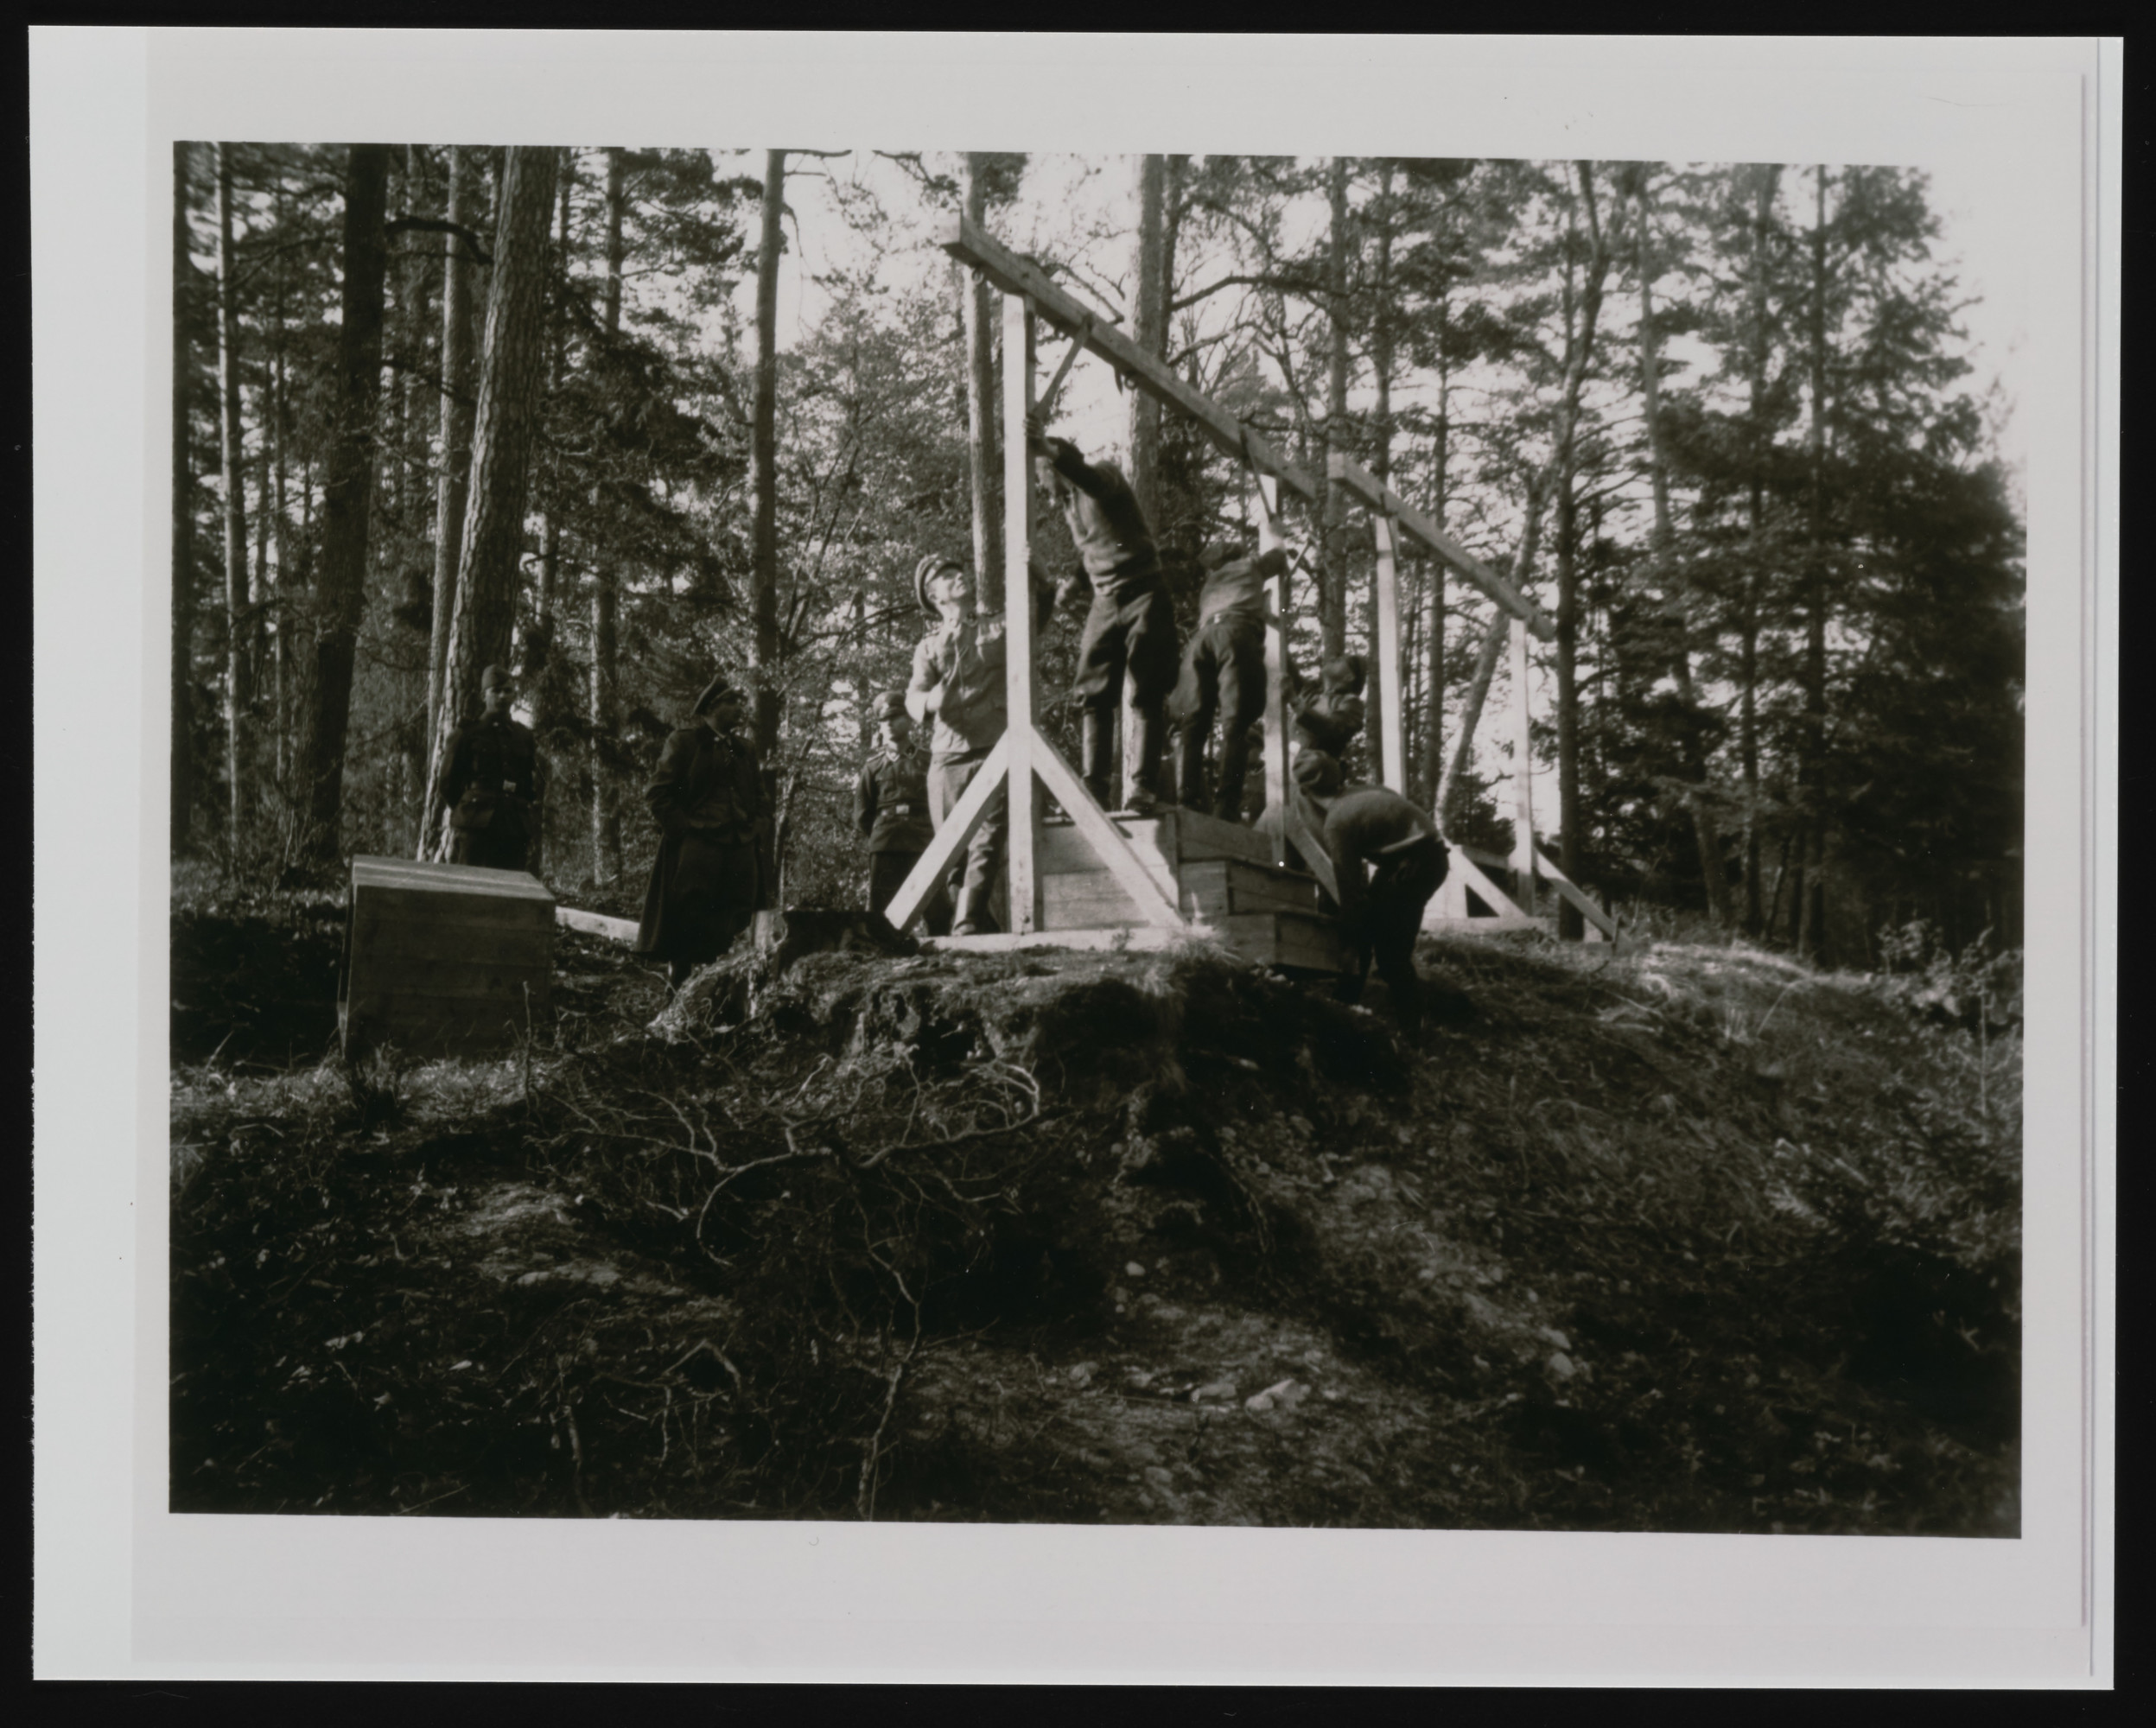 SS officers supervising the building of a gallows in the forest near the Buchenwald concentration camp.